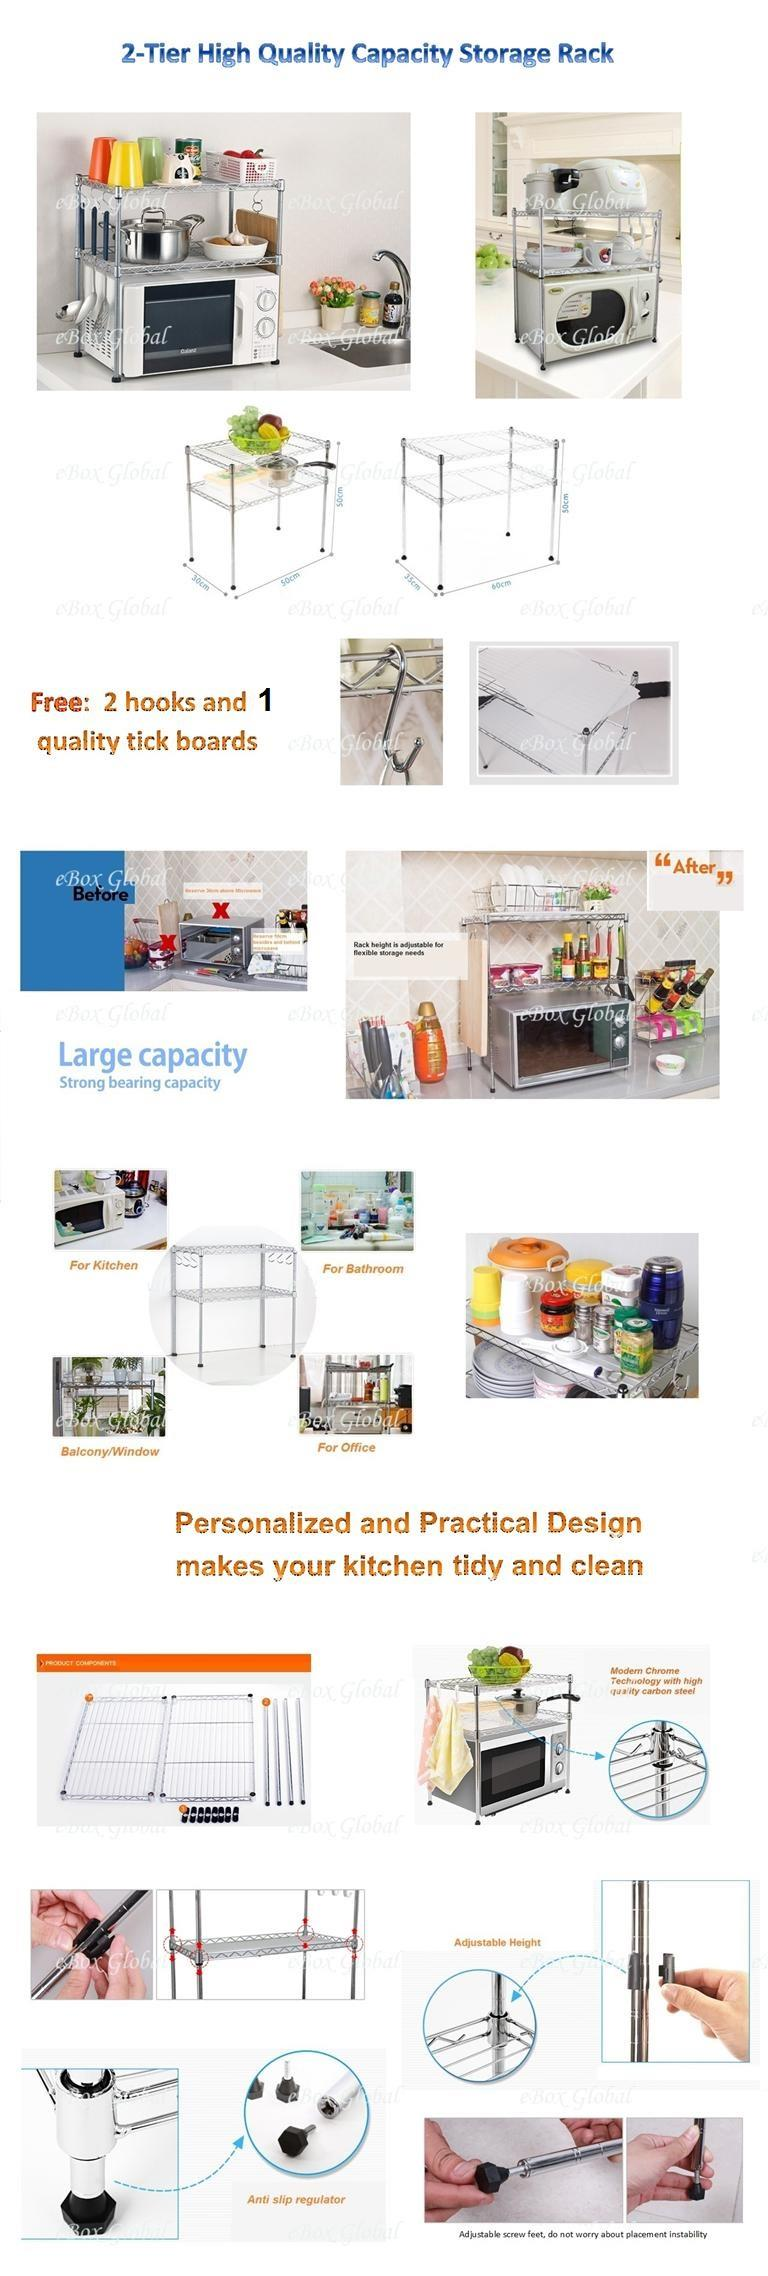 2-Tier High Quality Capacity Storage Rack 50 cm(small)